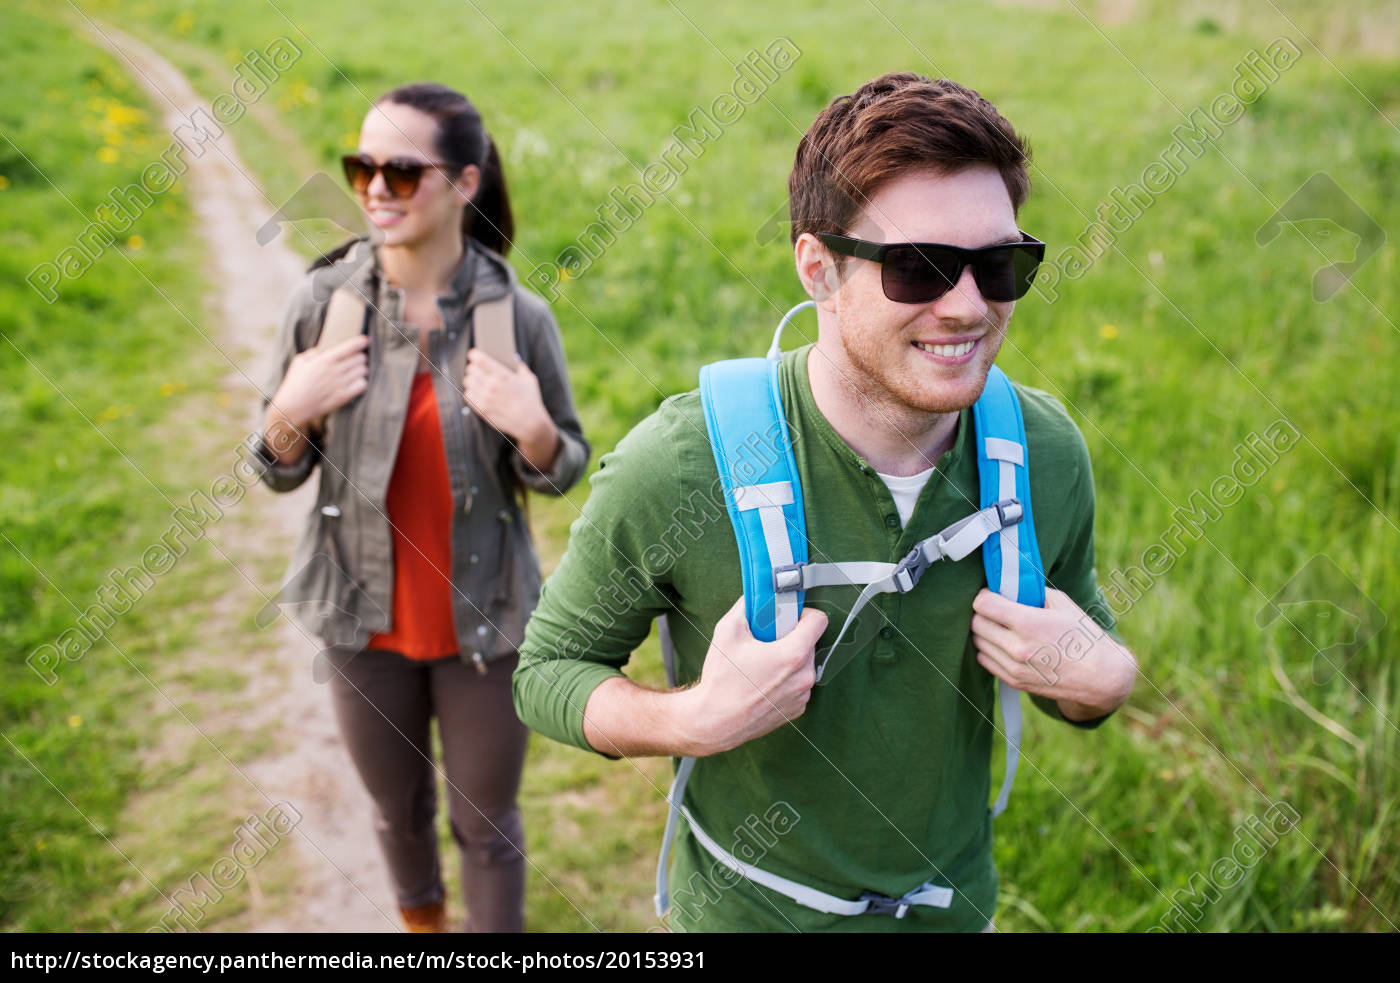 happy, couple, with, backpacks, hiking, outdoors - 20153931